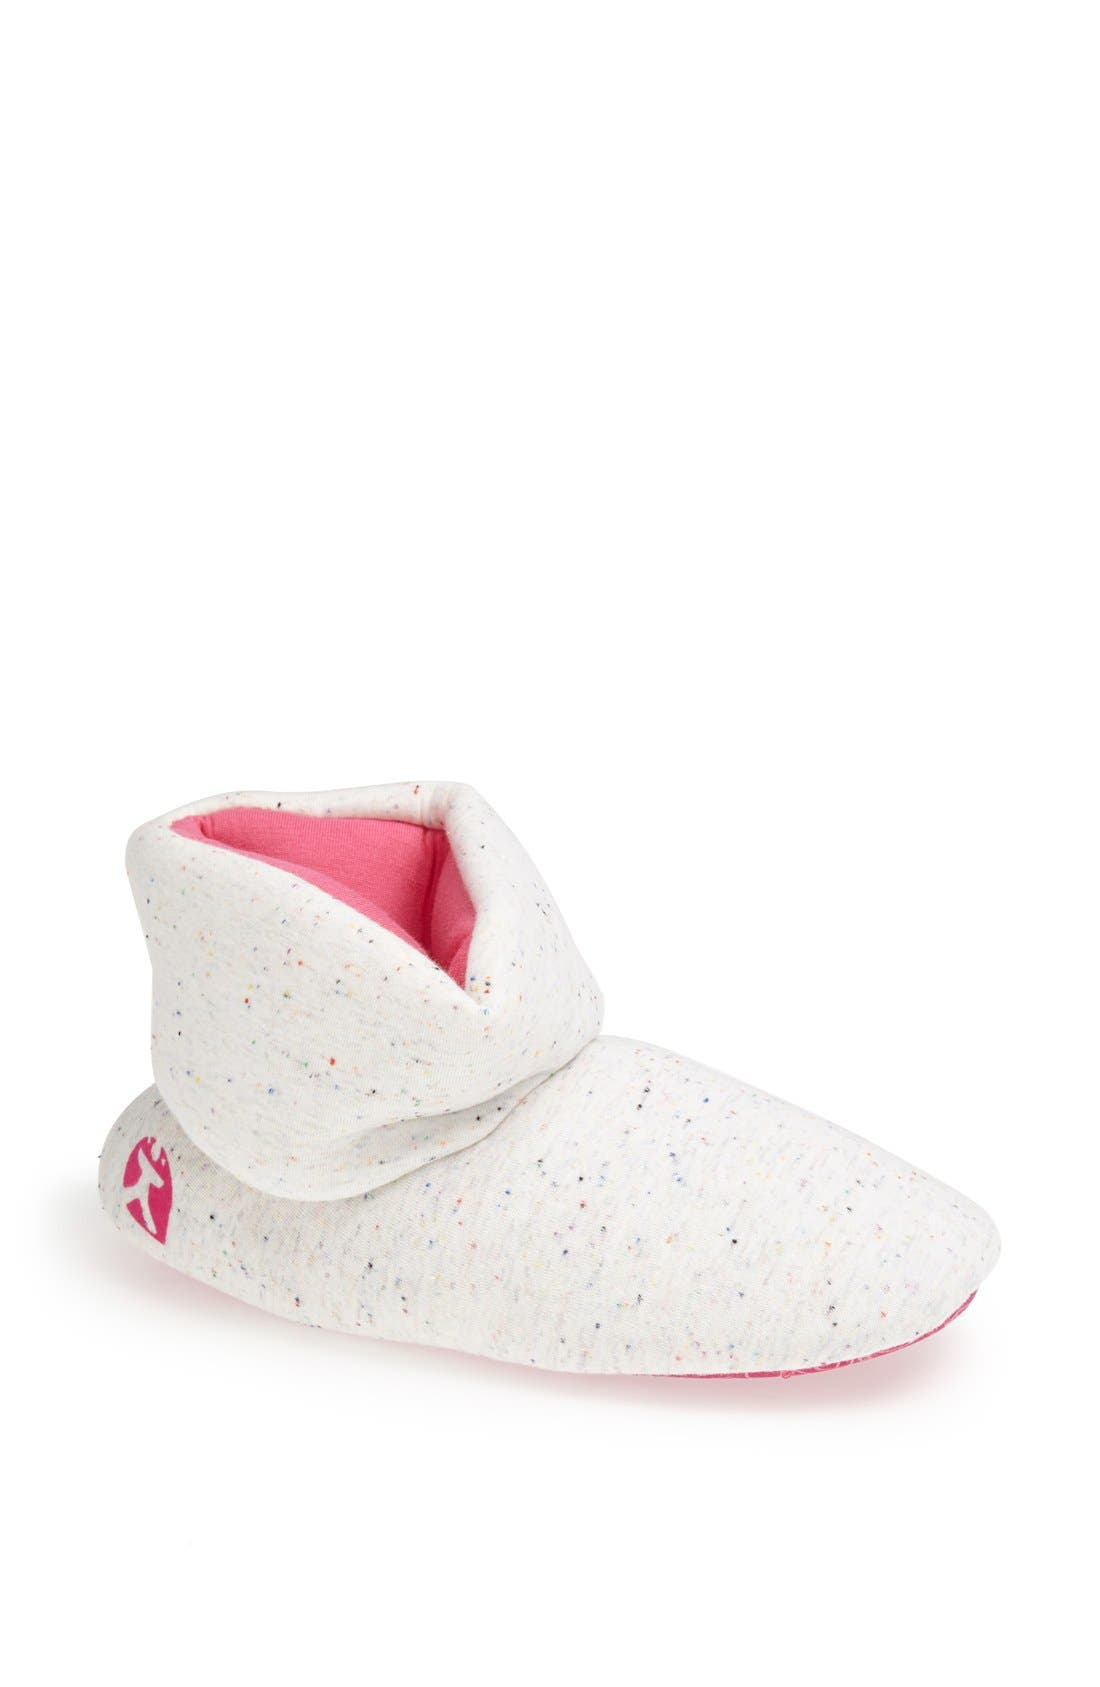 Alternate Image 1 Selected - Bedroom Athletics 'Avril' Bootie Slipper